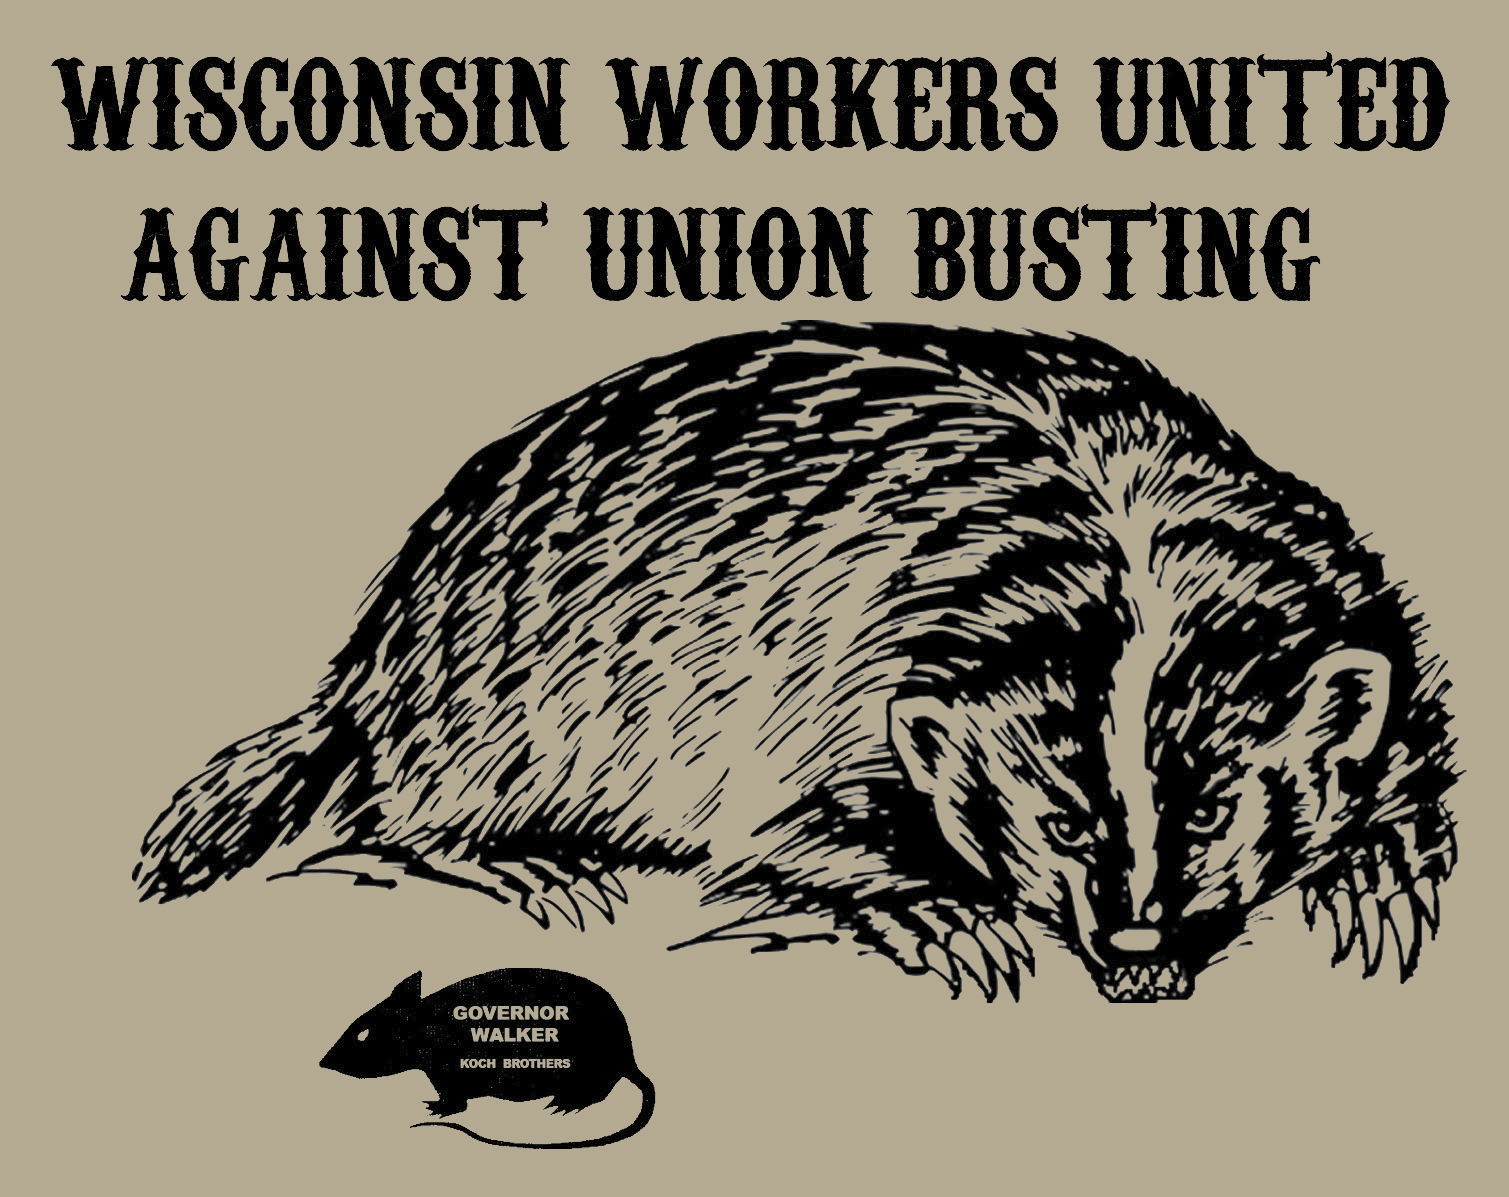 lampert_WisconsinWorkersUnited-